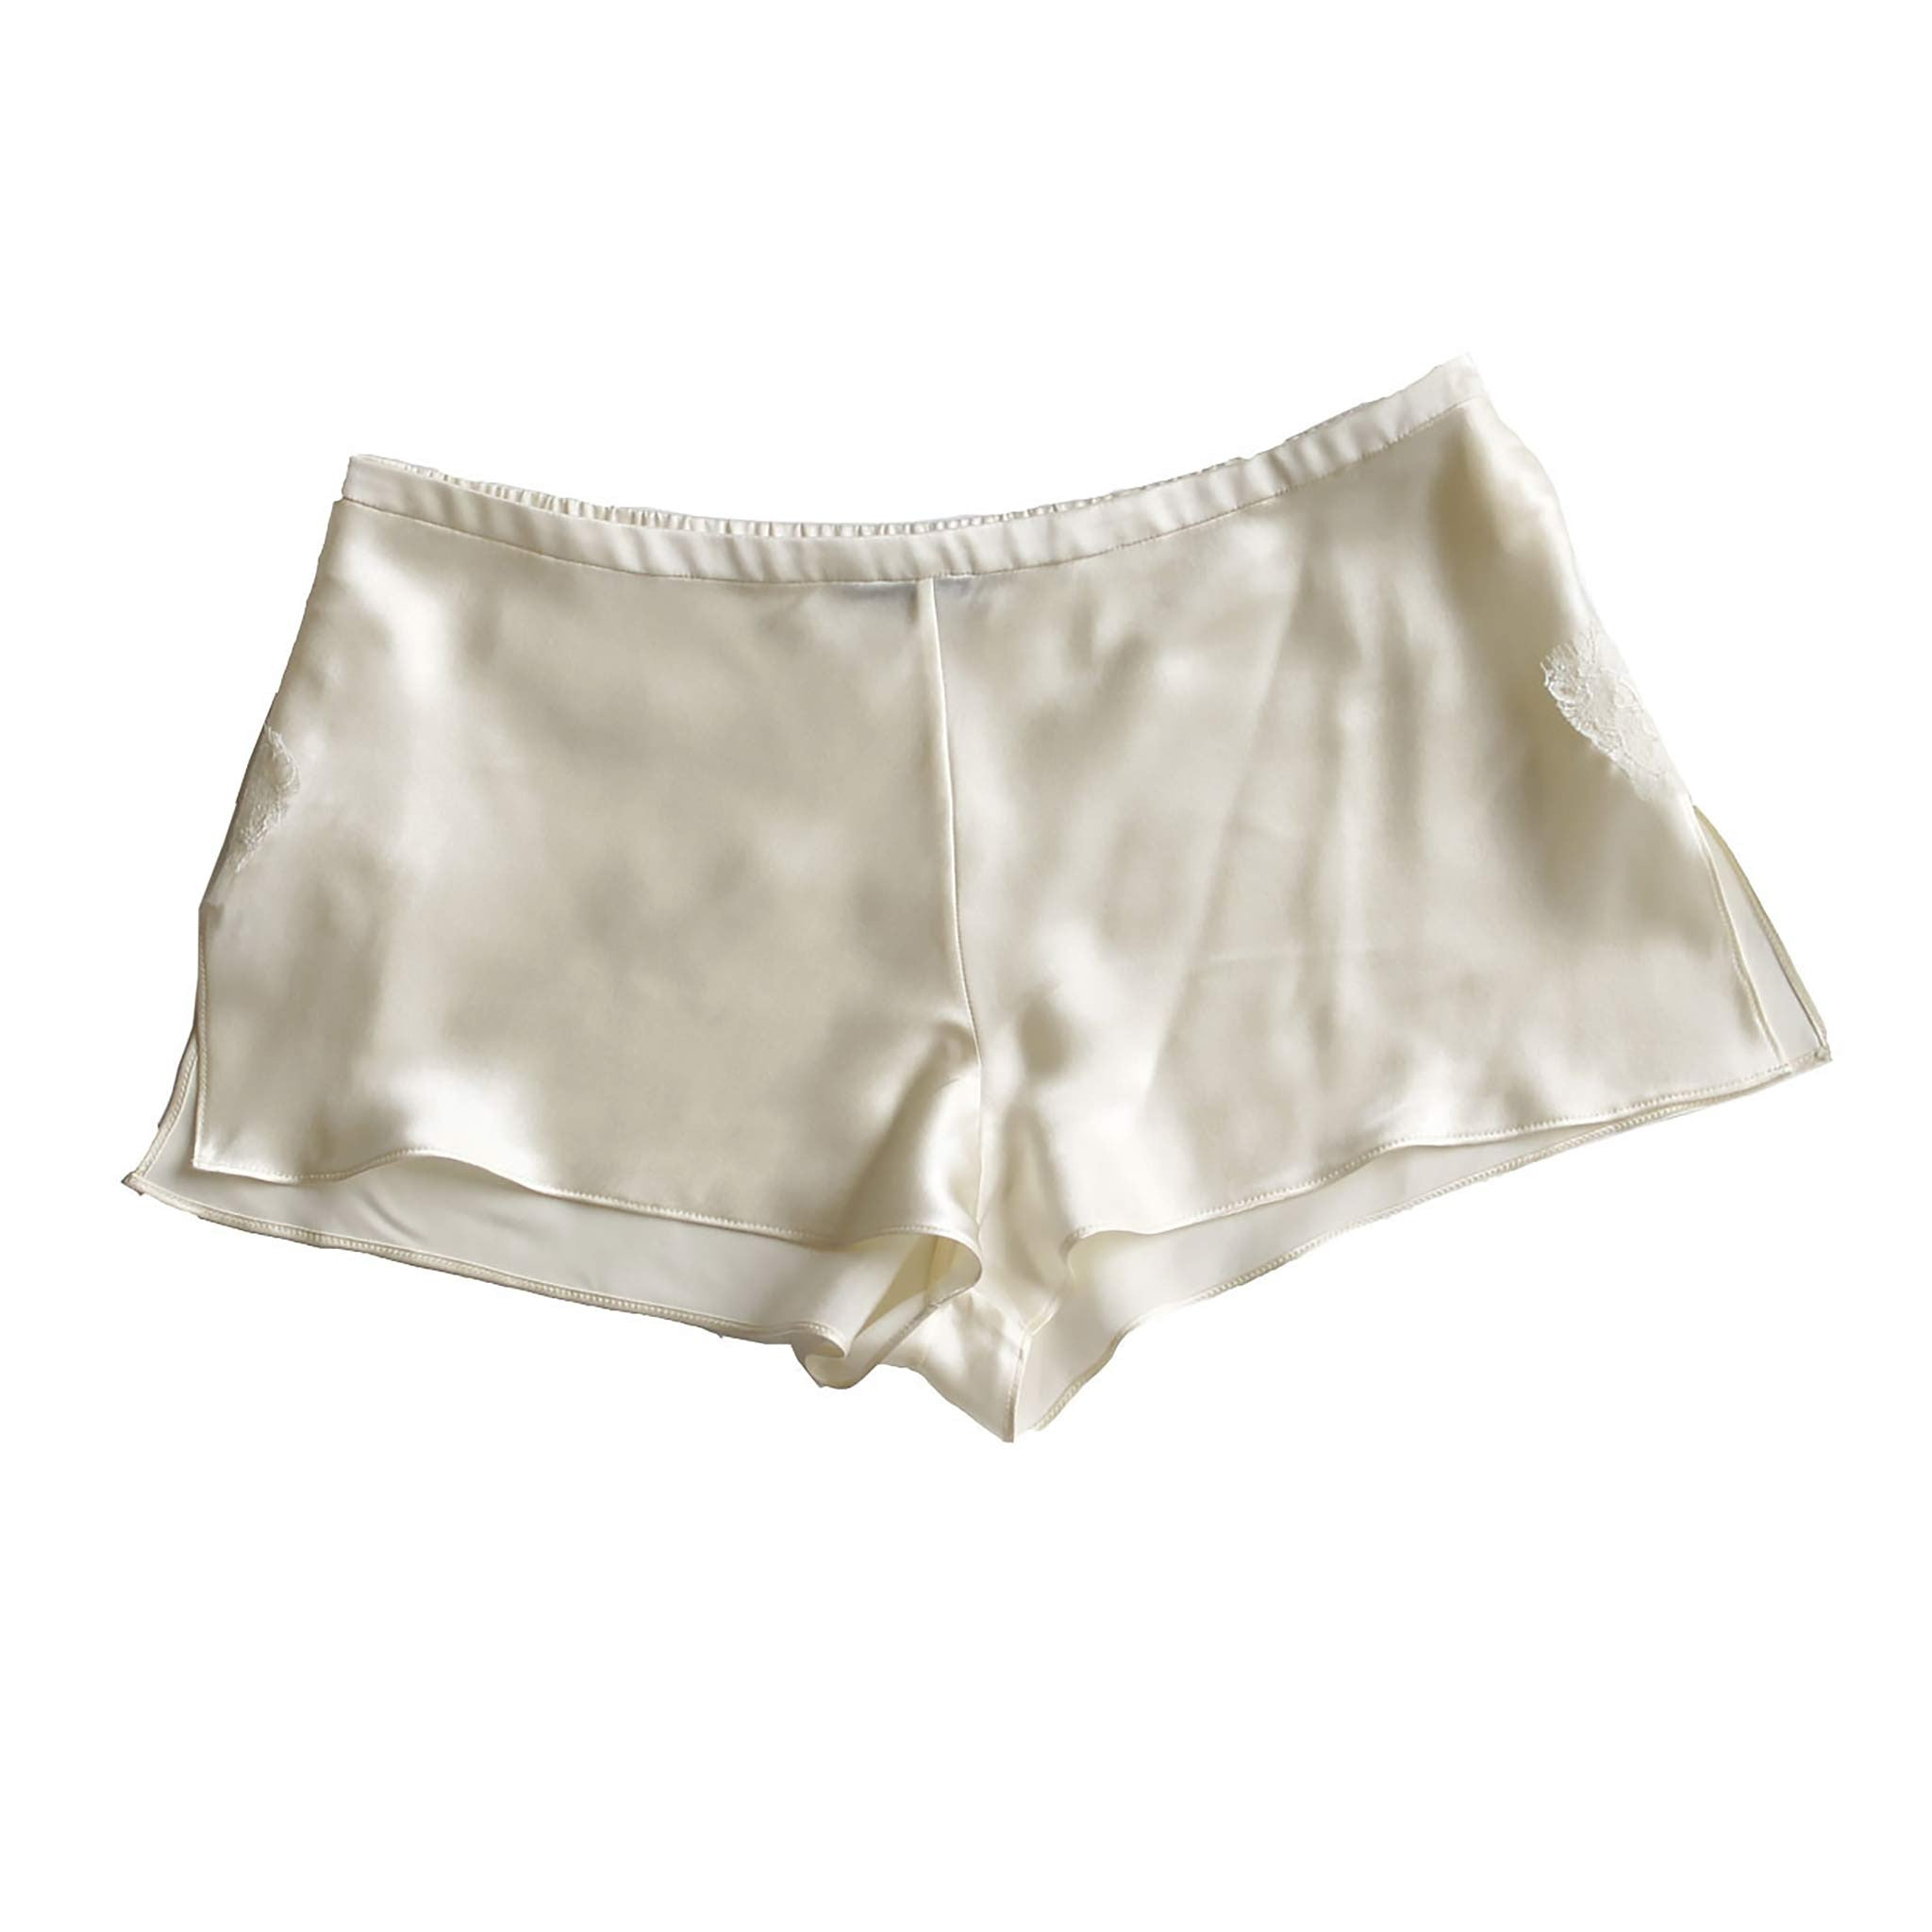 Sita Knickers in Pearl Silk Charmeuse